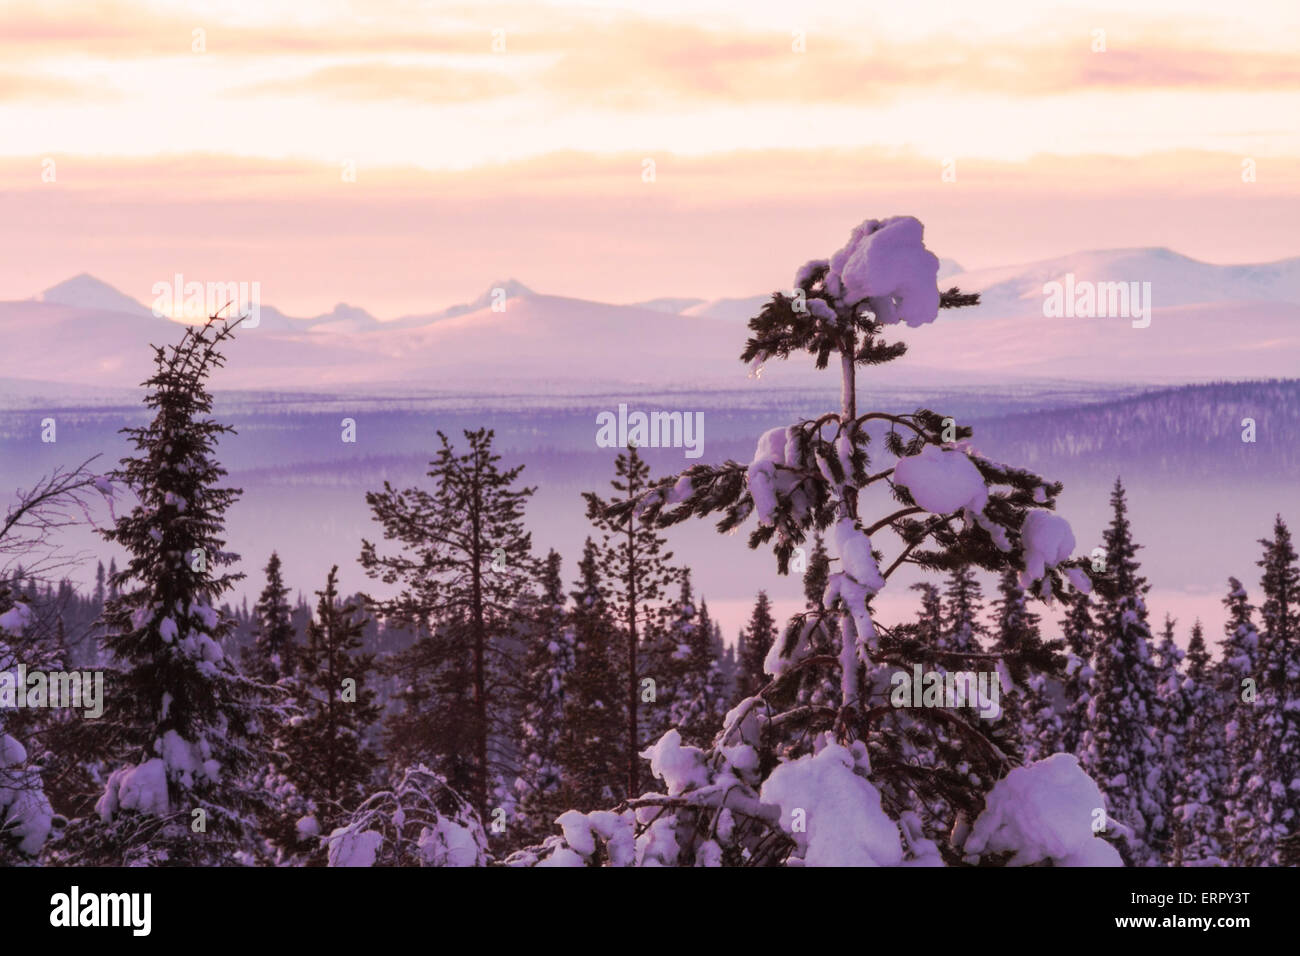 Winter landscape with the mountains of sarek national park in background, Gällivare, Swedish lapland - Stock Image